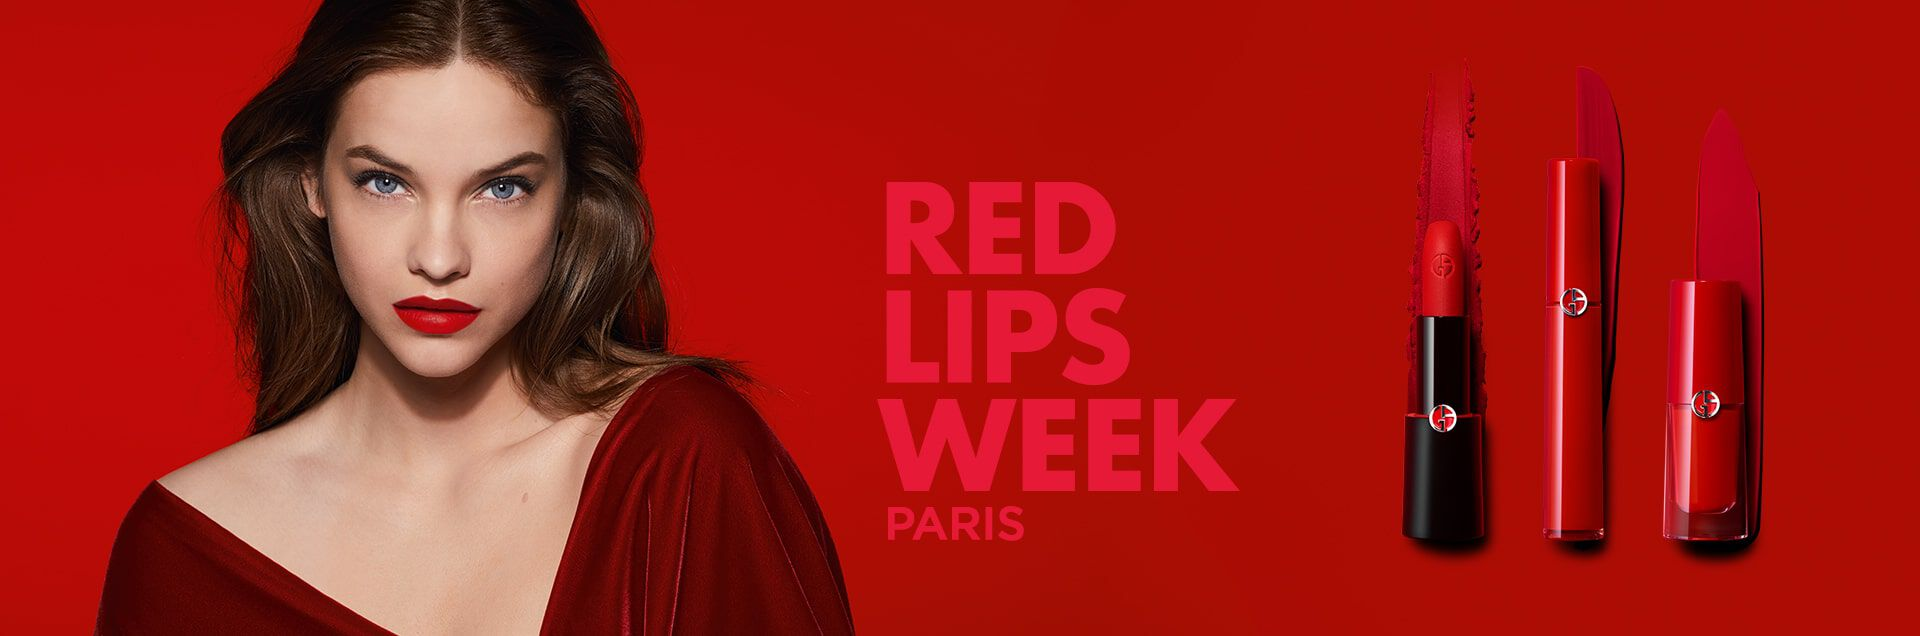 Red Lips Week